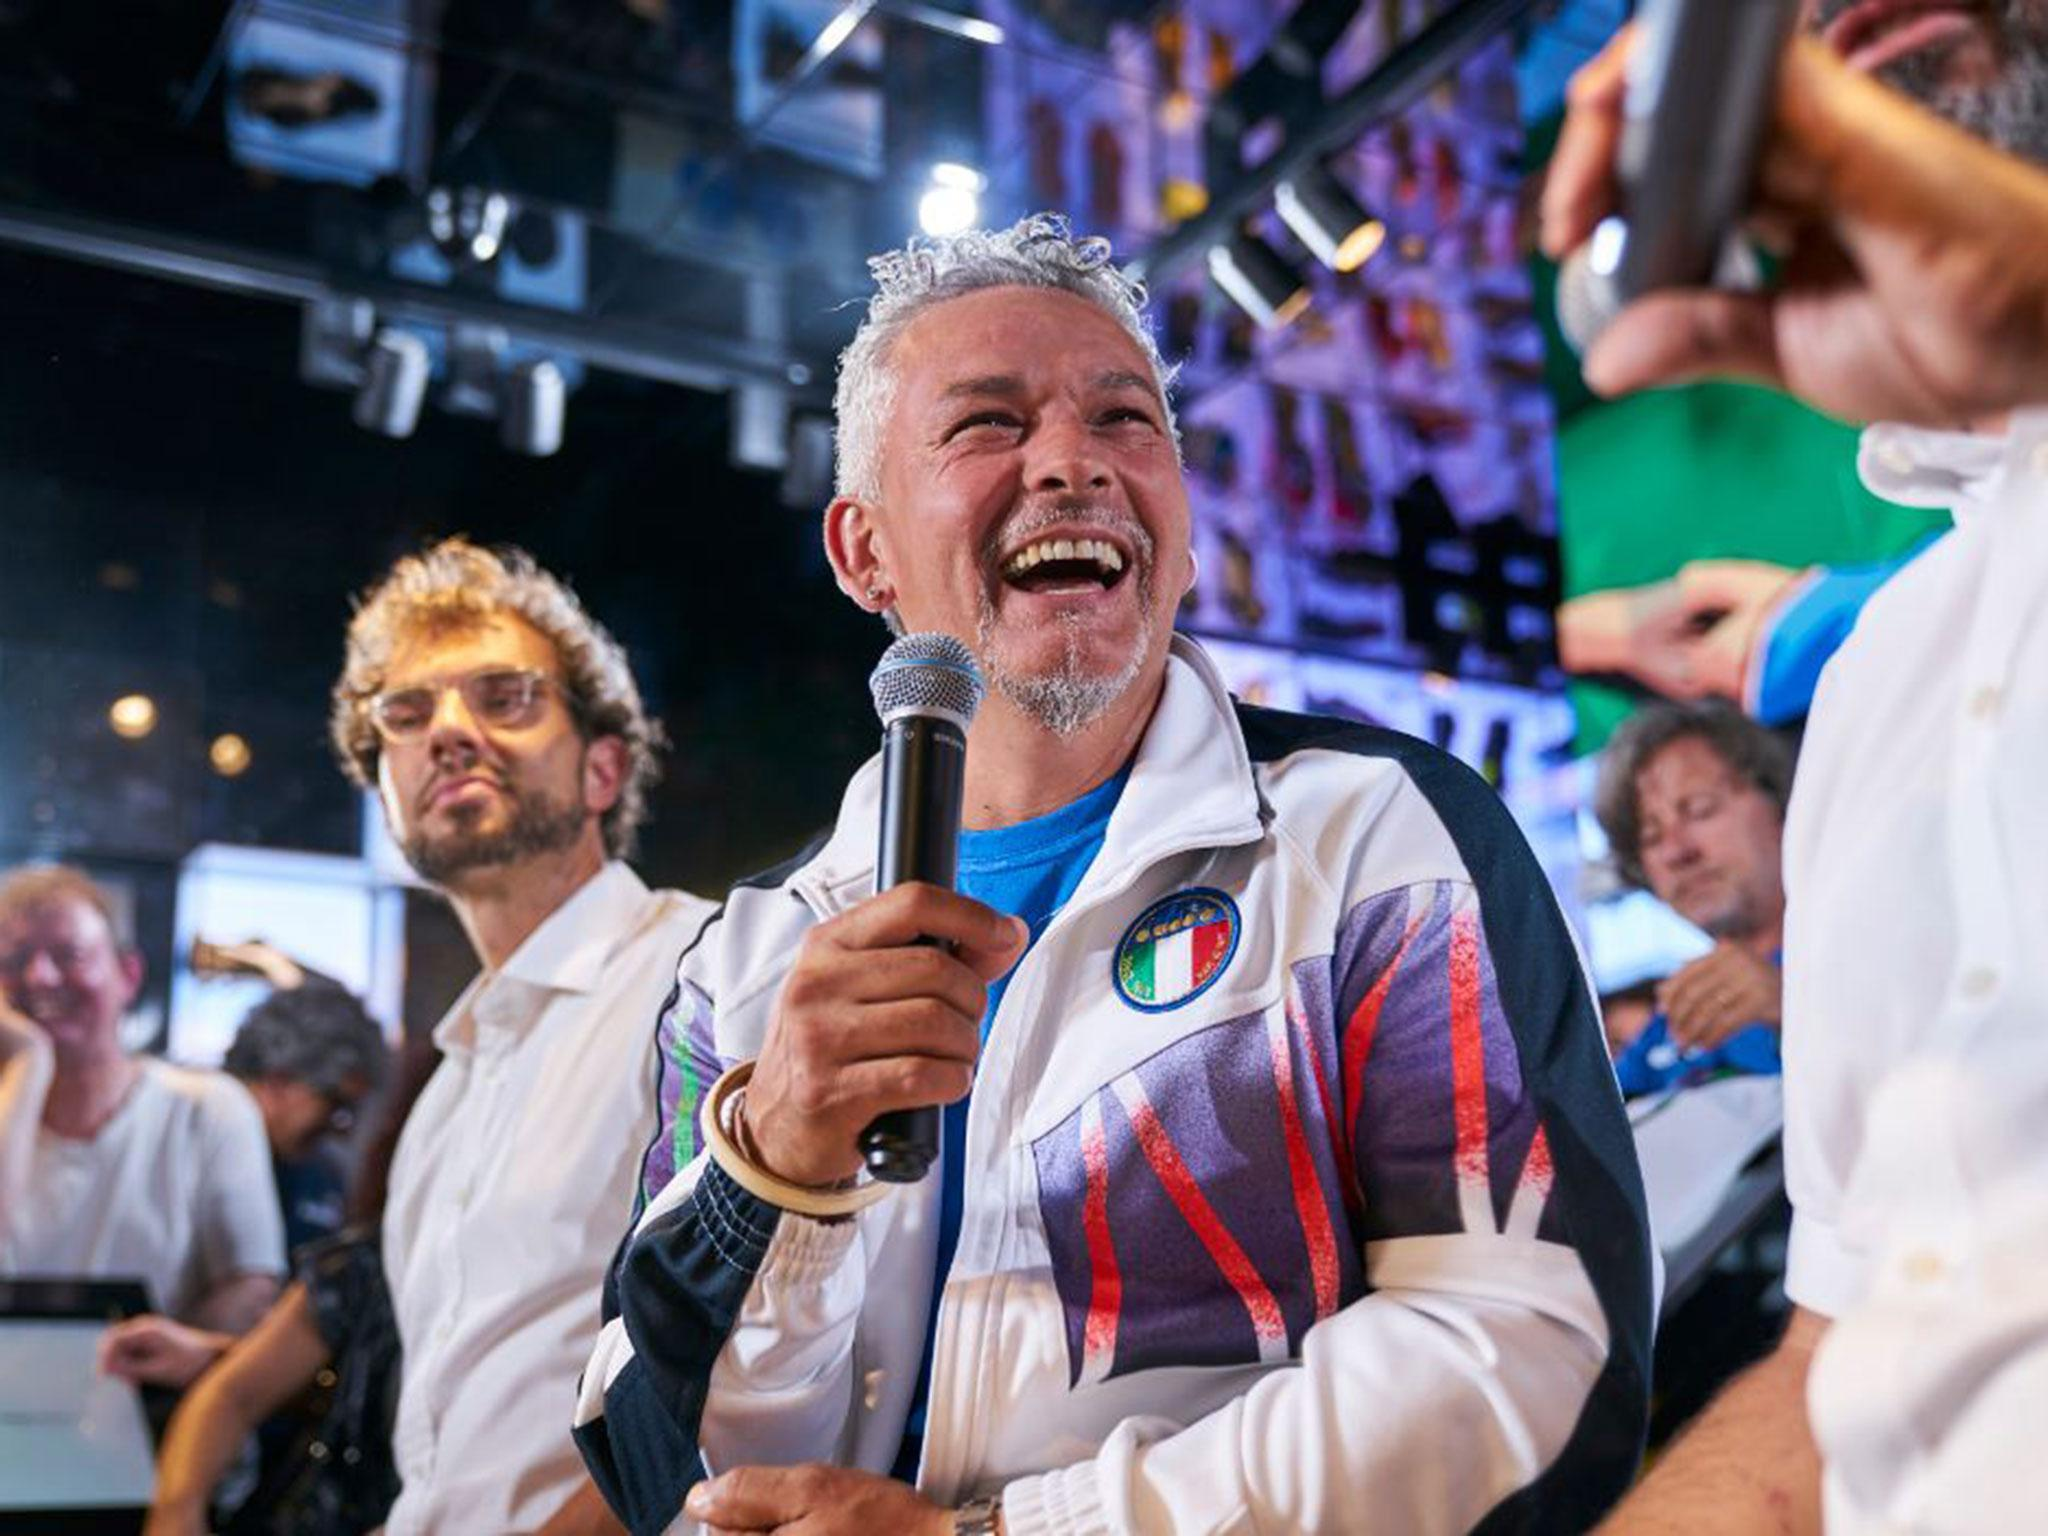 Roberto Baggio on USA 94, playing through the pain and putting the beautiful in the beautiful game